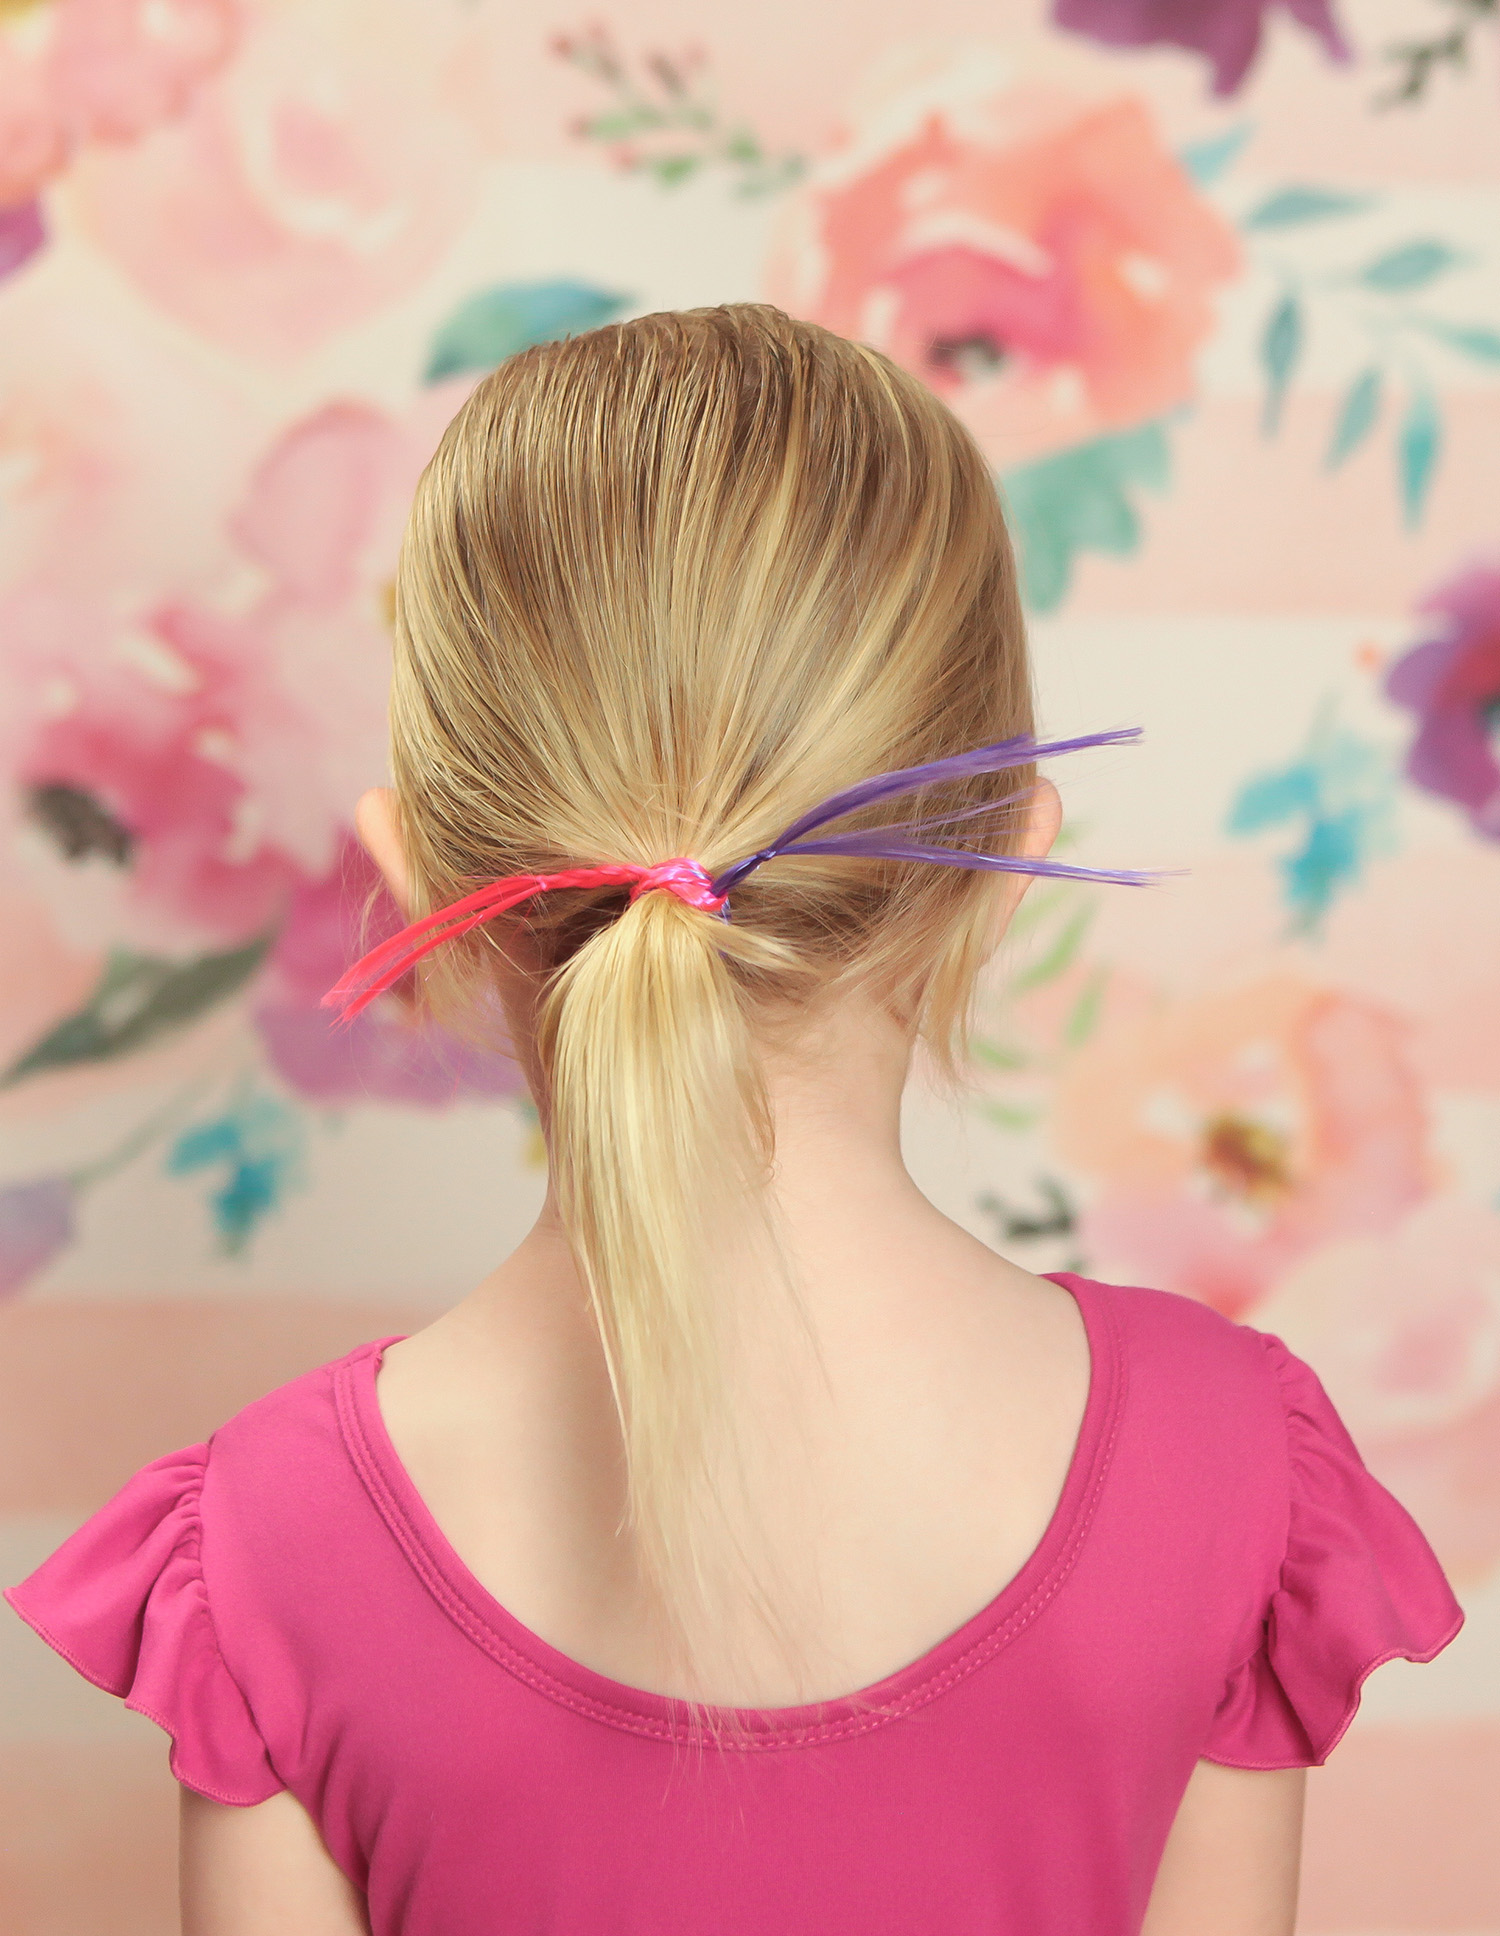 Struggling with toddler hairstyles? These 5 easy ponytails are perfect for even the most hair challenged parents!